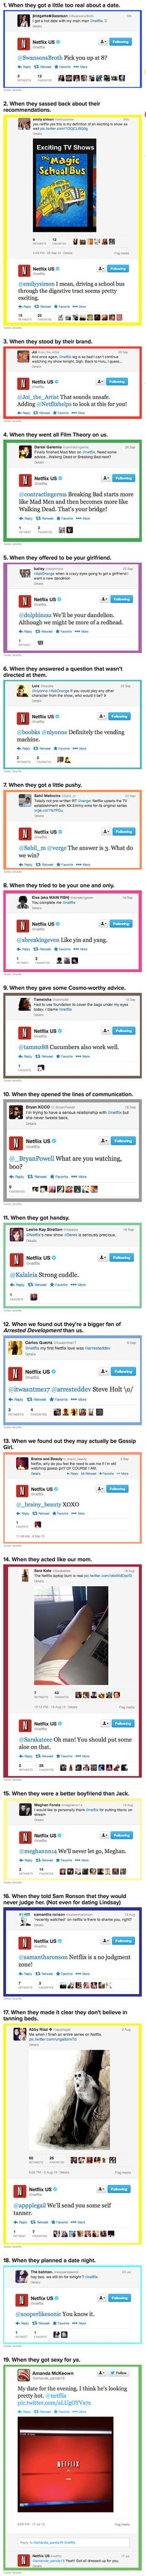 We have rounded up some cool examples showing why Netflix really loves its users.